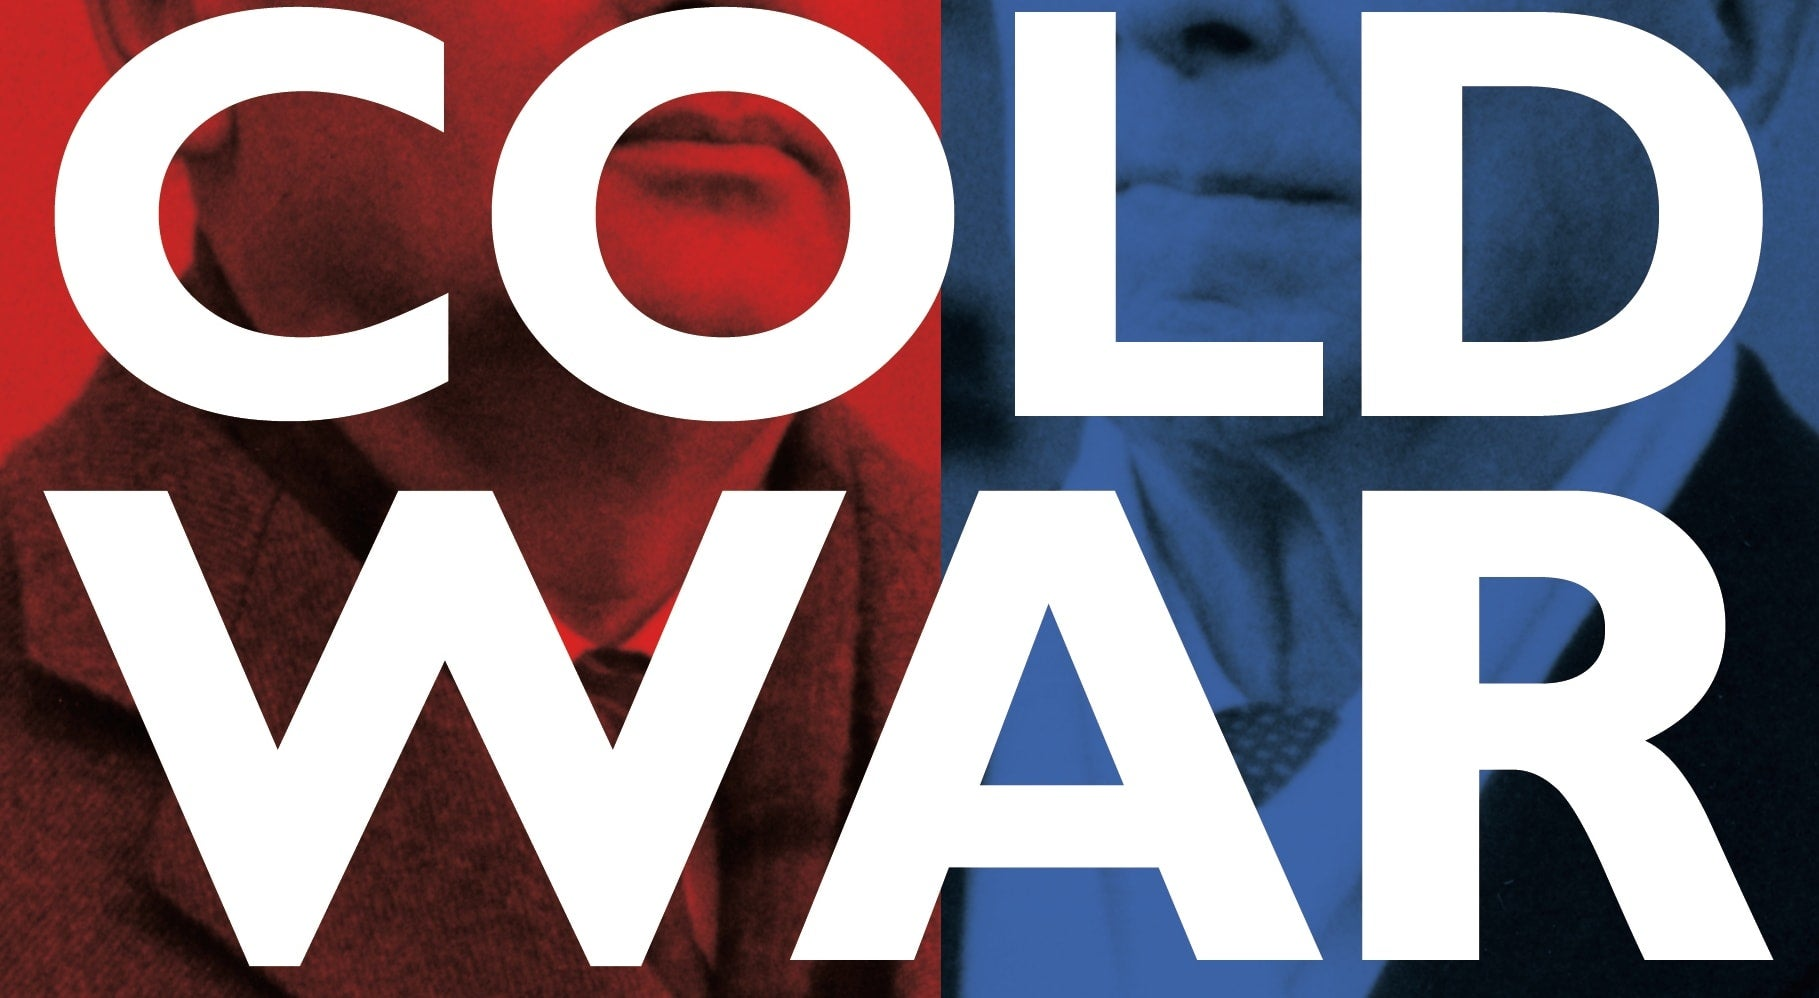 Cold War written on blue and red background